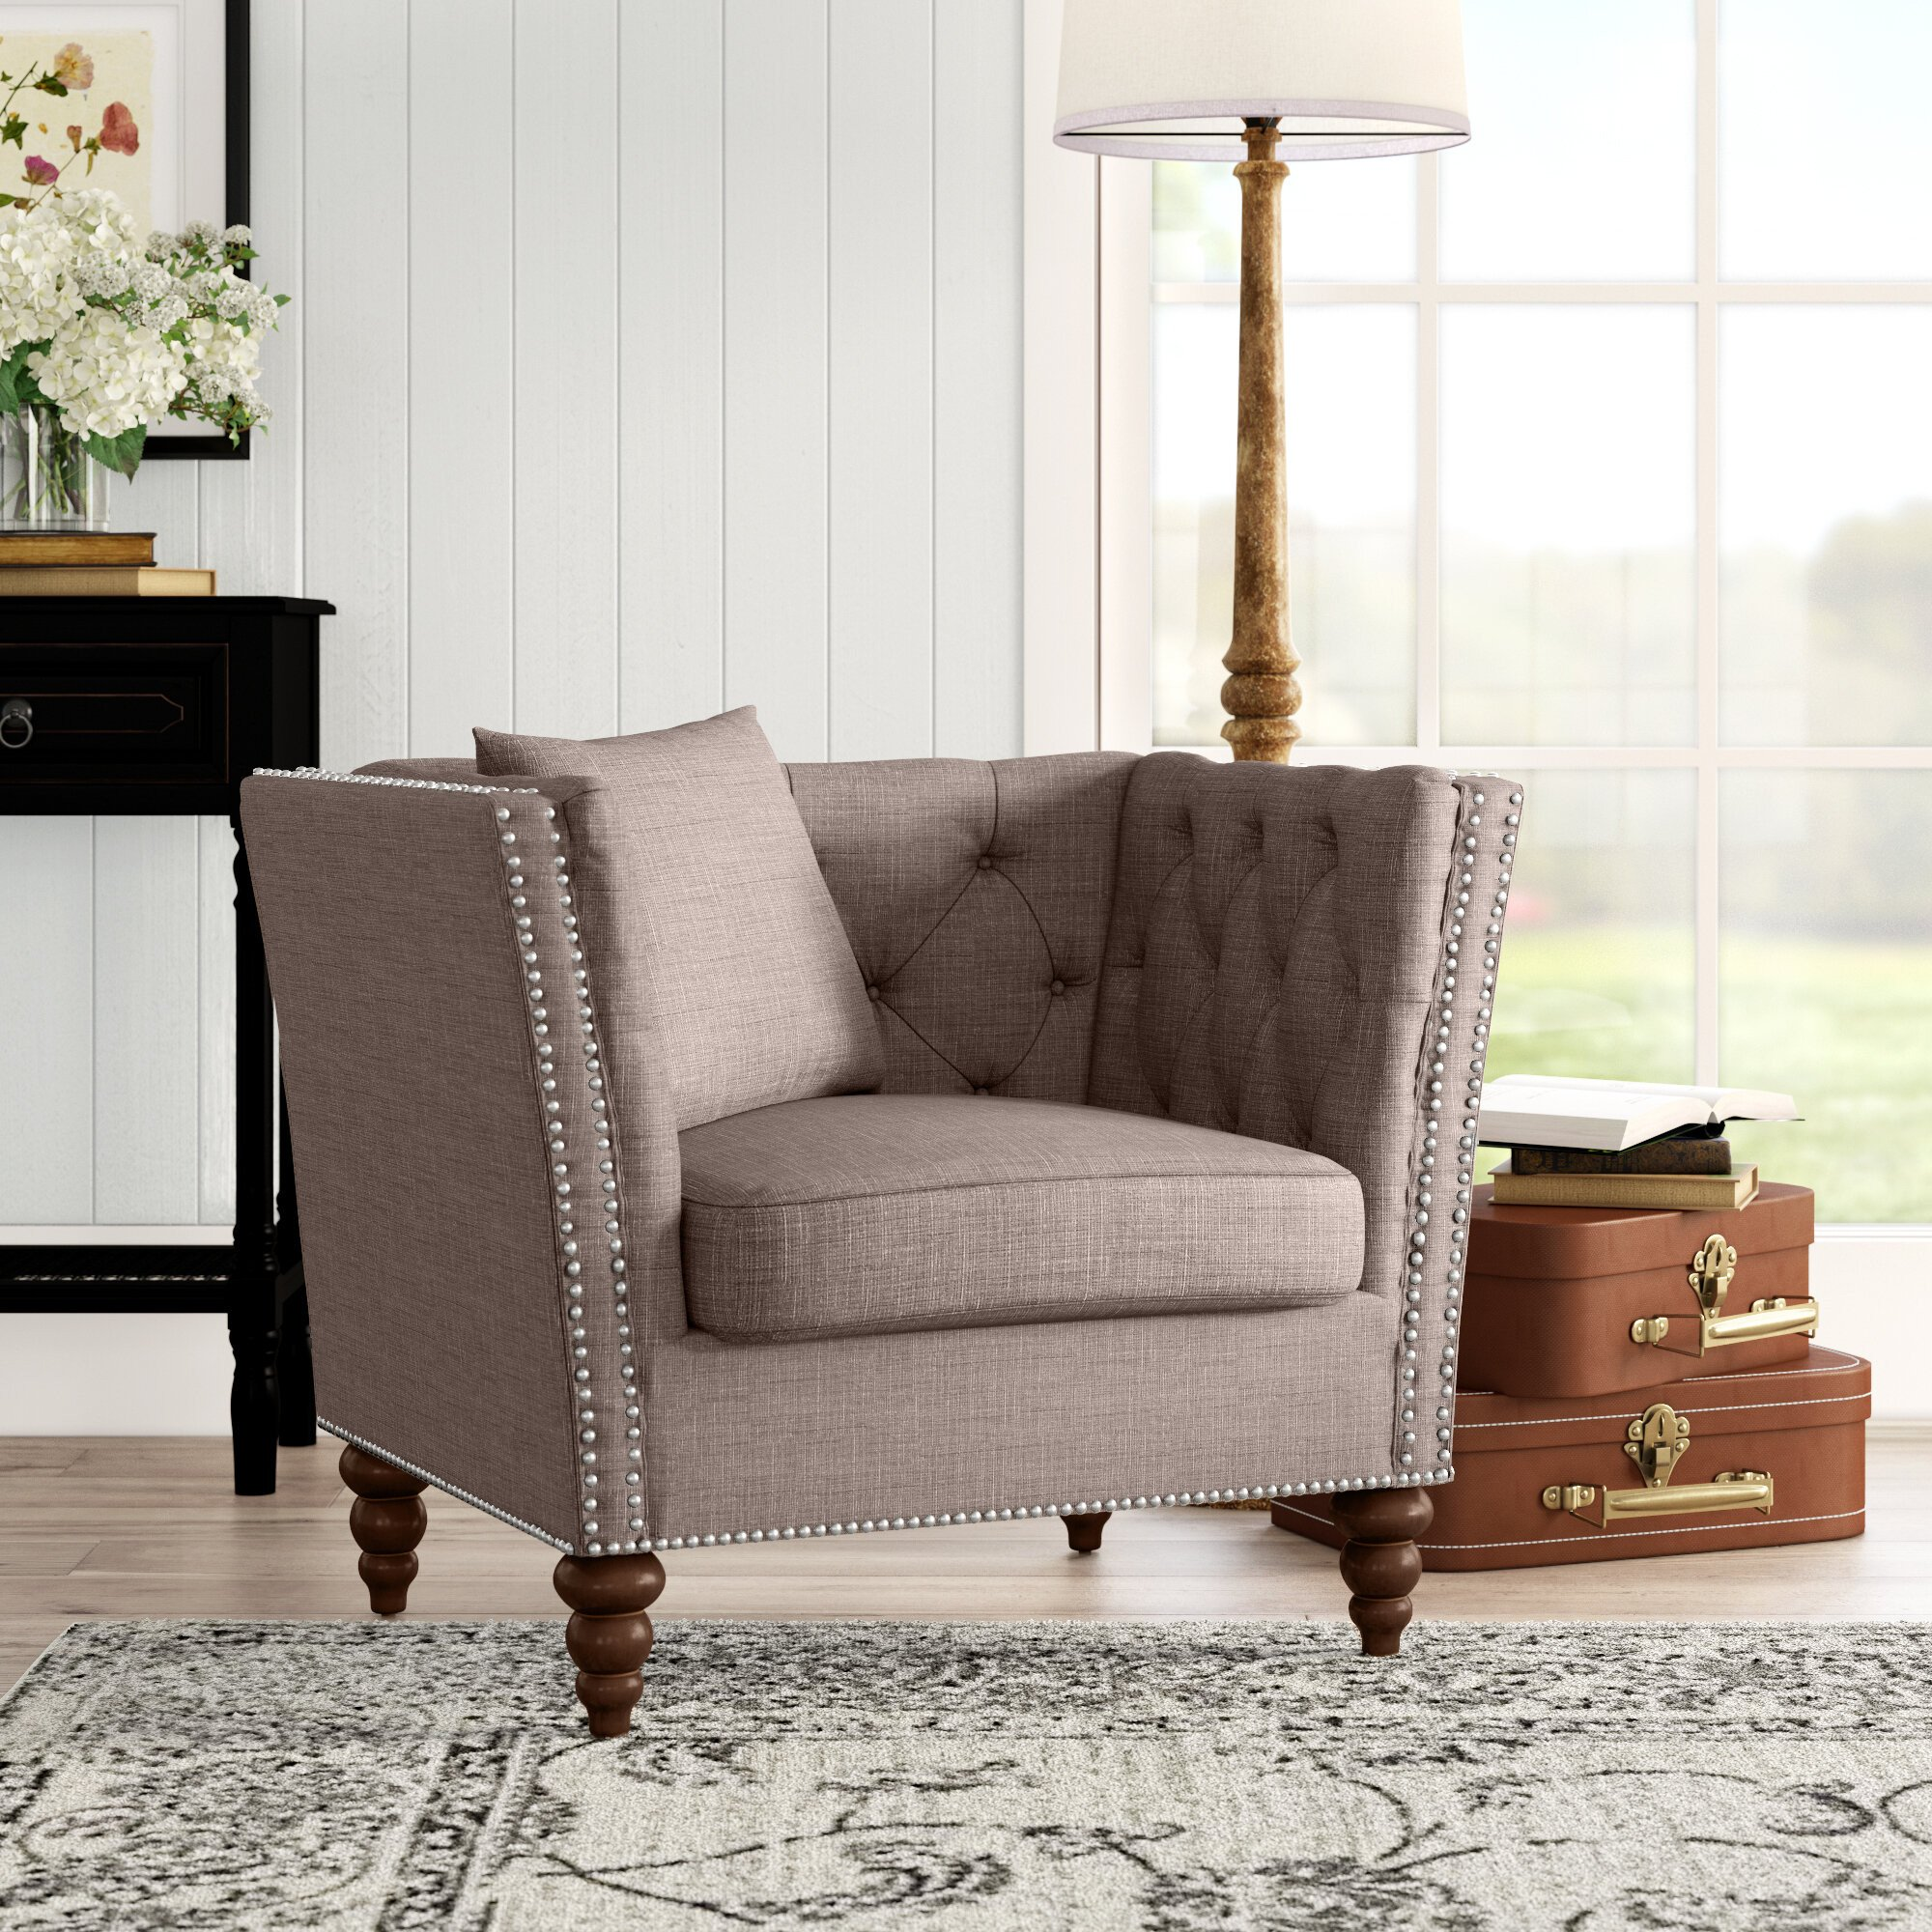 Comfy Reading Chair for Bedroom Awesome Gudruna Armchair